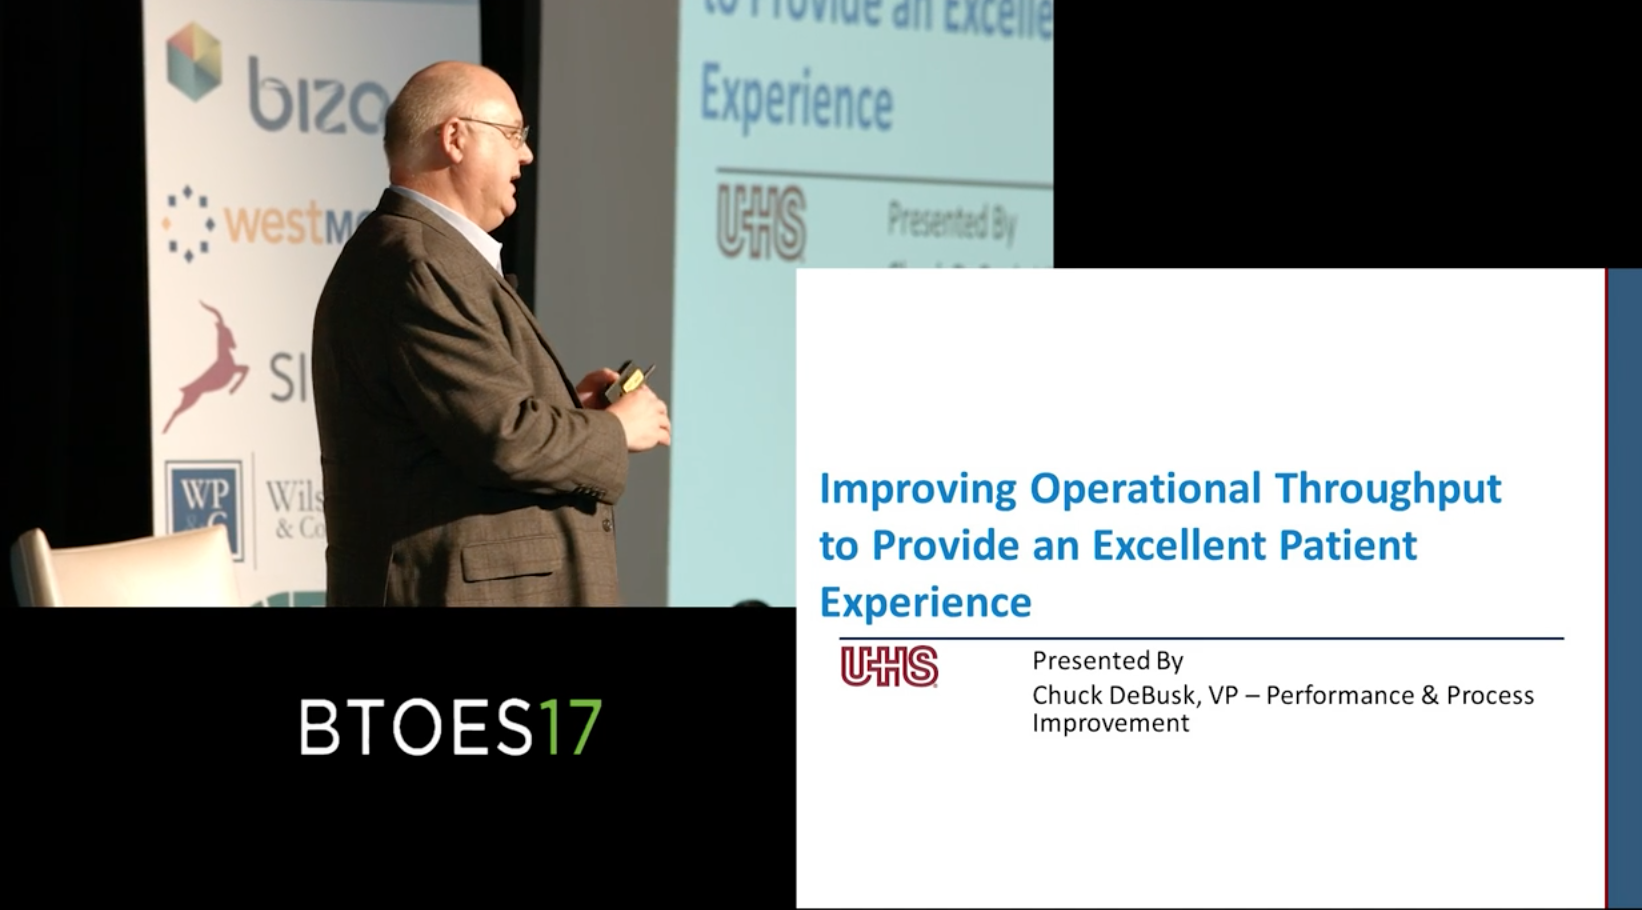 Improving Operational Throughput to Provide an Excellent Customer Experience